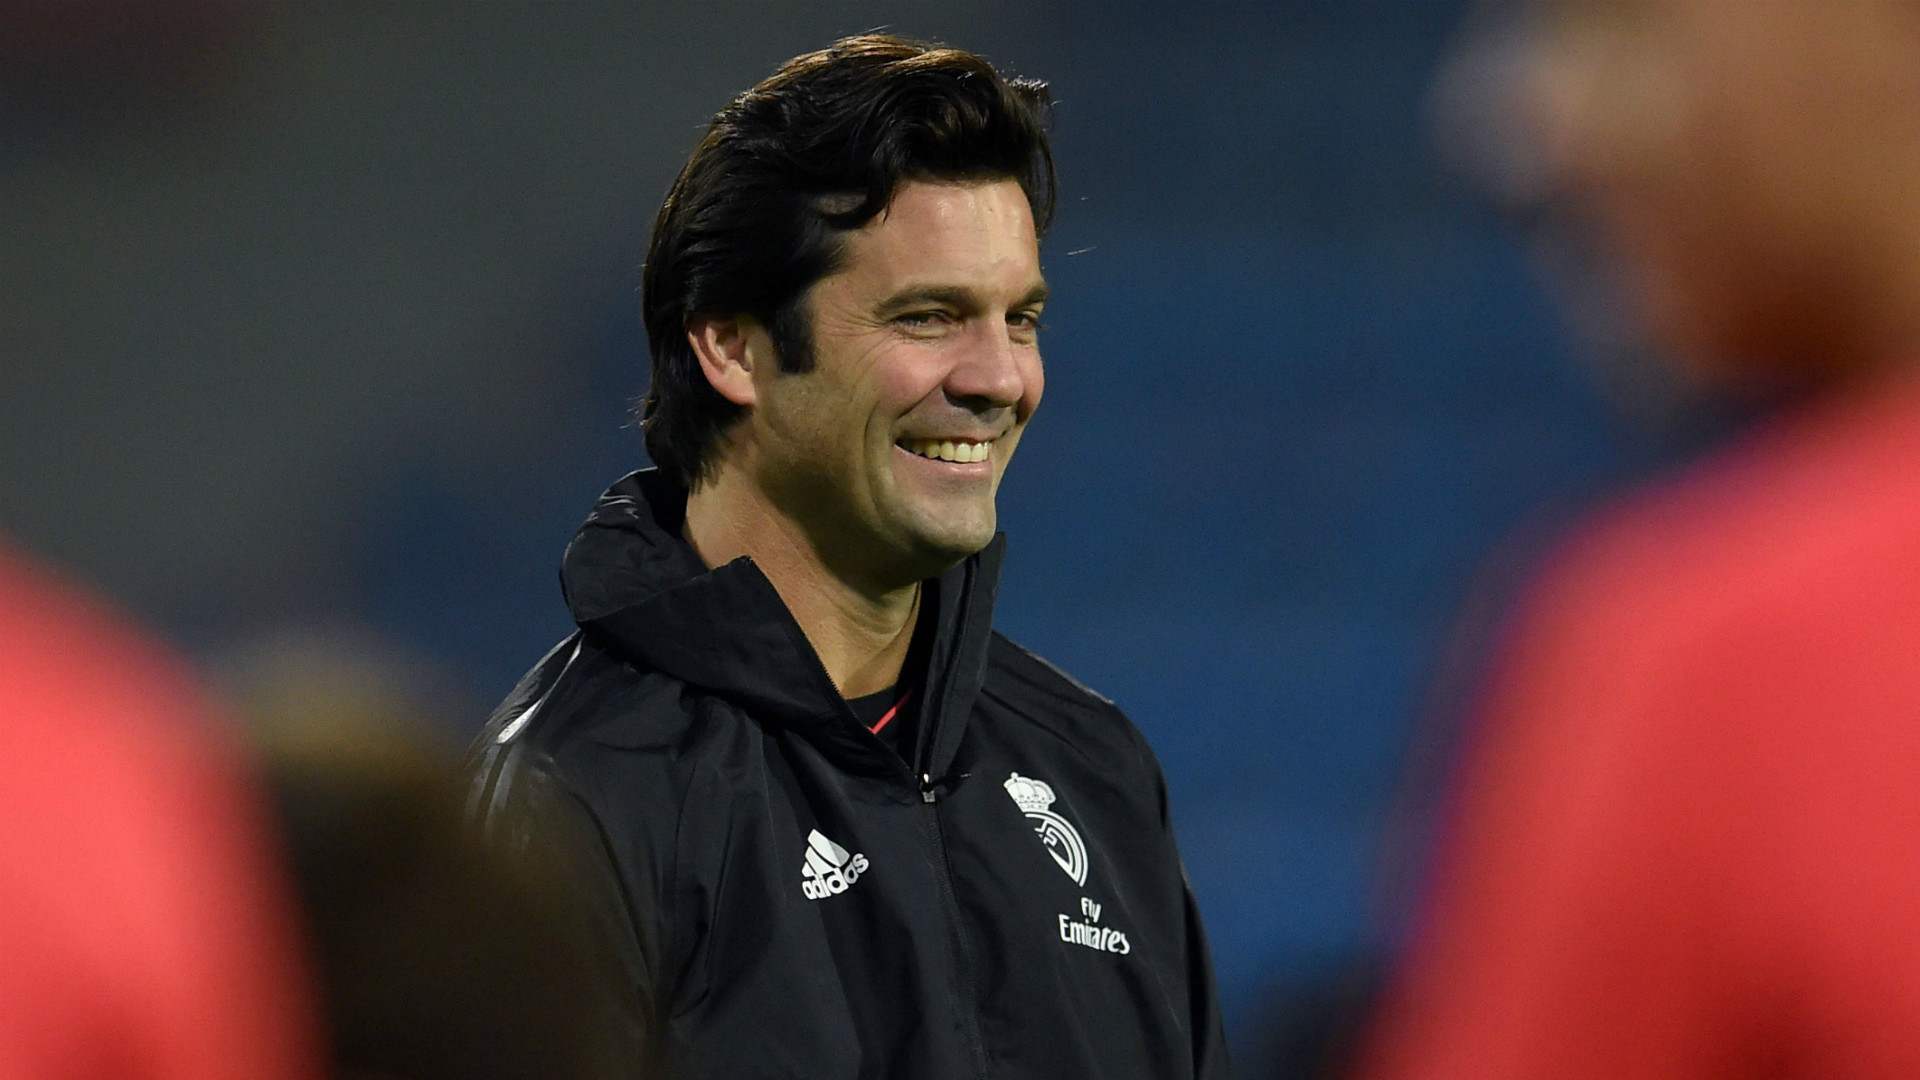 Real Madrid Confirm Appointment of Santiago Solari as Head Coach Until 2021